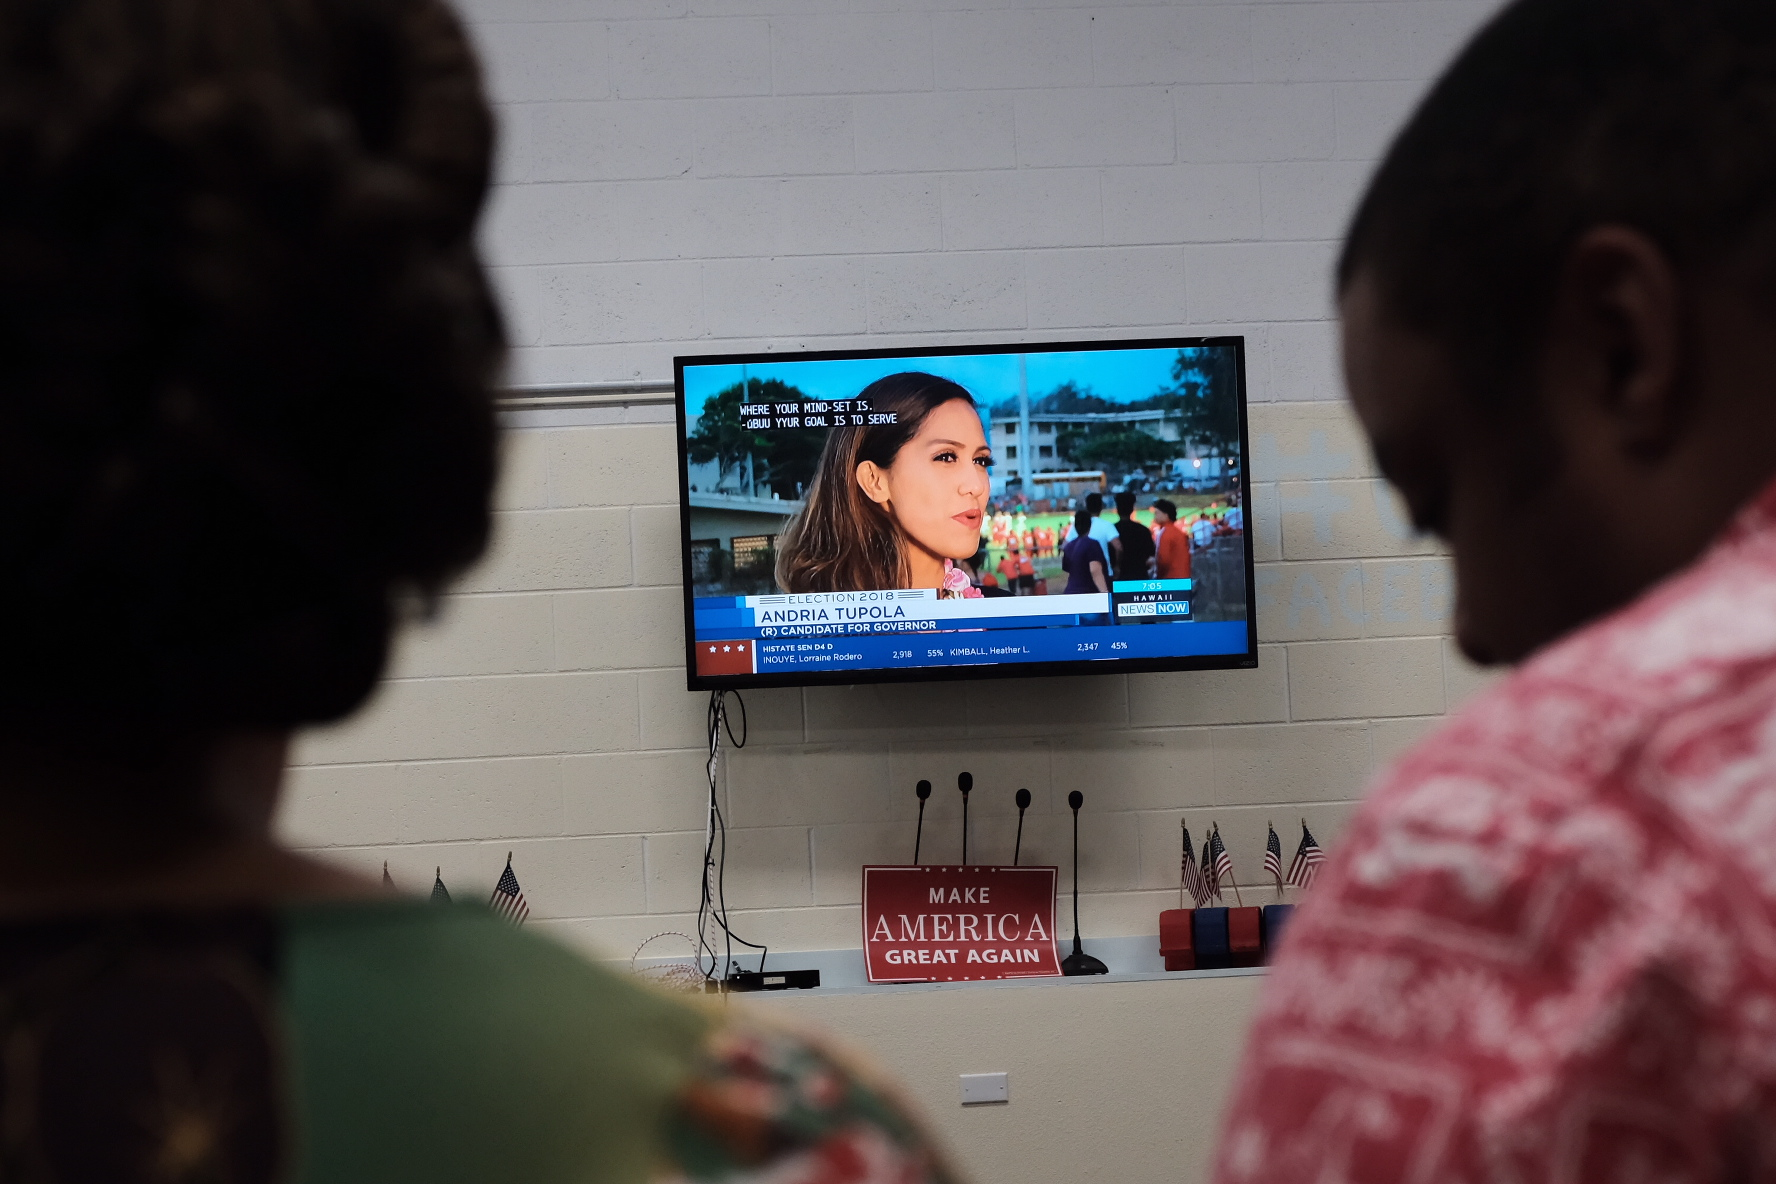 <p>State Rep. Andria Tupola spent Saturday night at a high school football game as she was winning the Republican gubernatorial nomination. Hawaii GOP chair Shirlene Ostrov, left and executive director Aaron Wilson watch from party headquarters as Tupola gives a TV interview.</p>